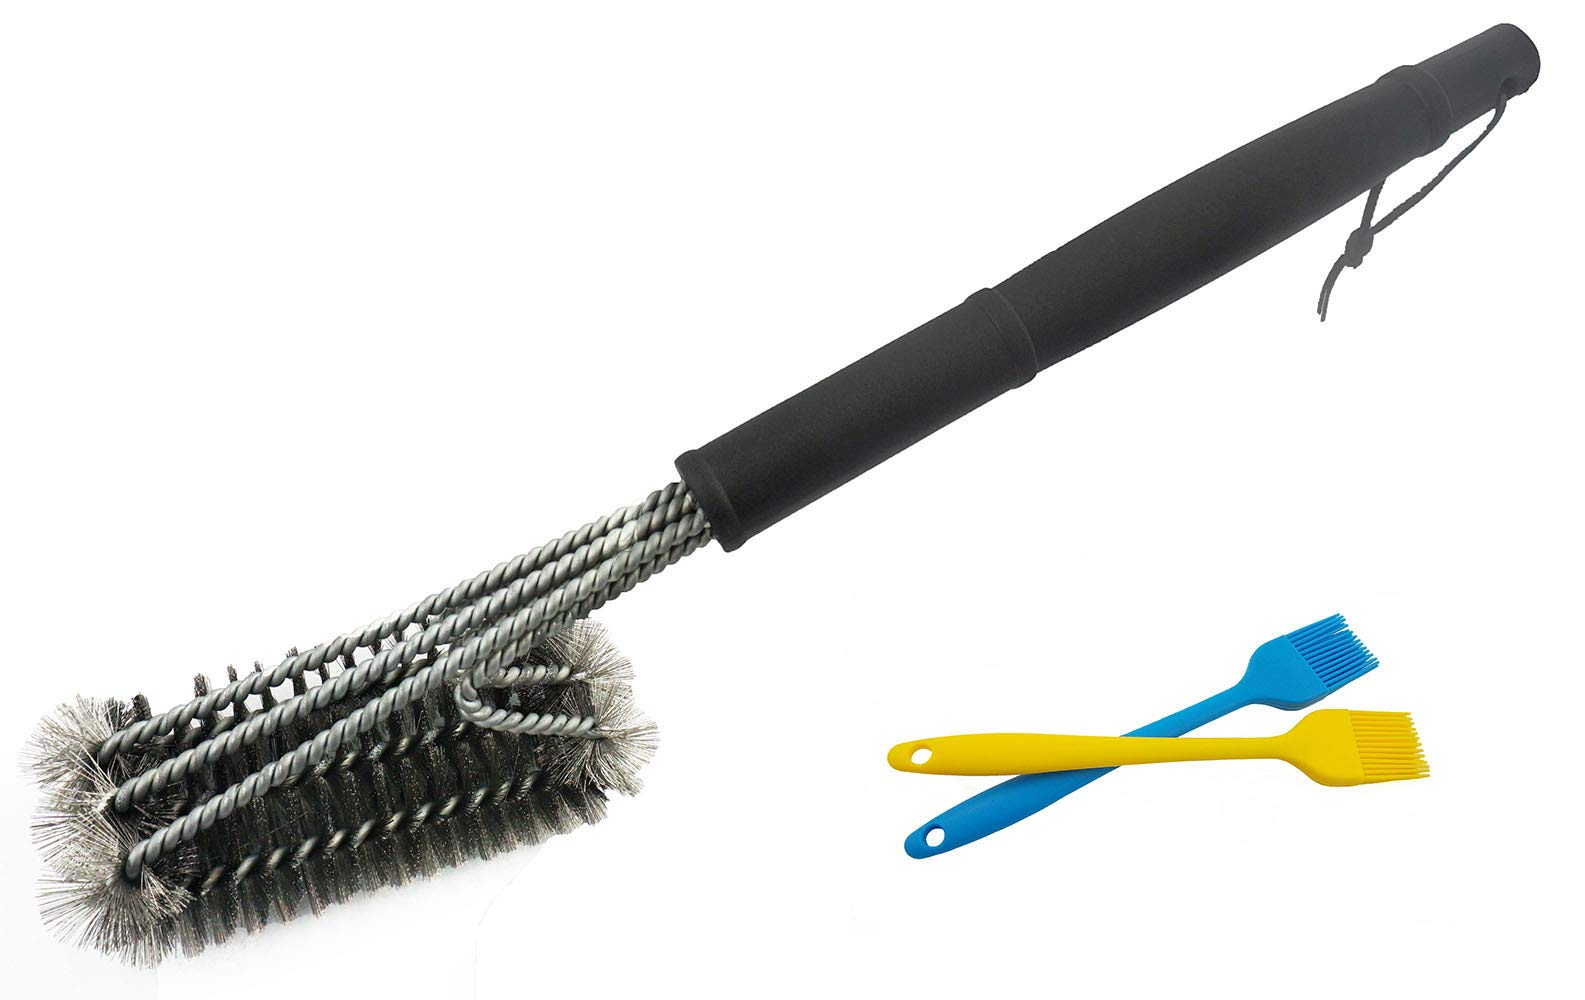 18'' Bristle Grill Brush, Best BBQ Cleaner 100% Safe Healthy. 2 Silicone Brush And Stiff Handle Resistant Stainless Steel Brush Tool Apply to All Charcoal, Gas, Steel Grill Grates Barbecue Cooking .3